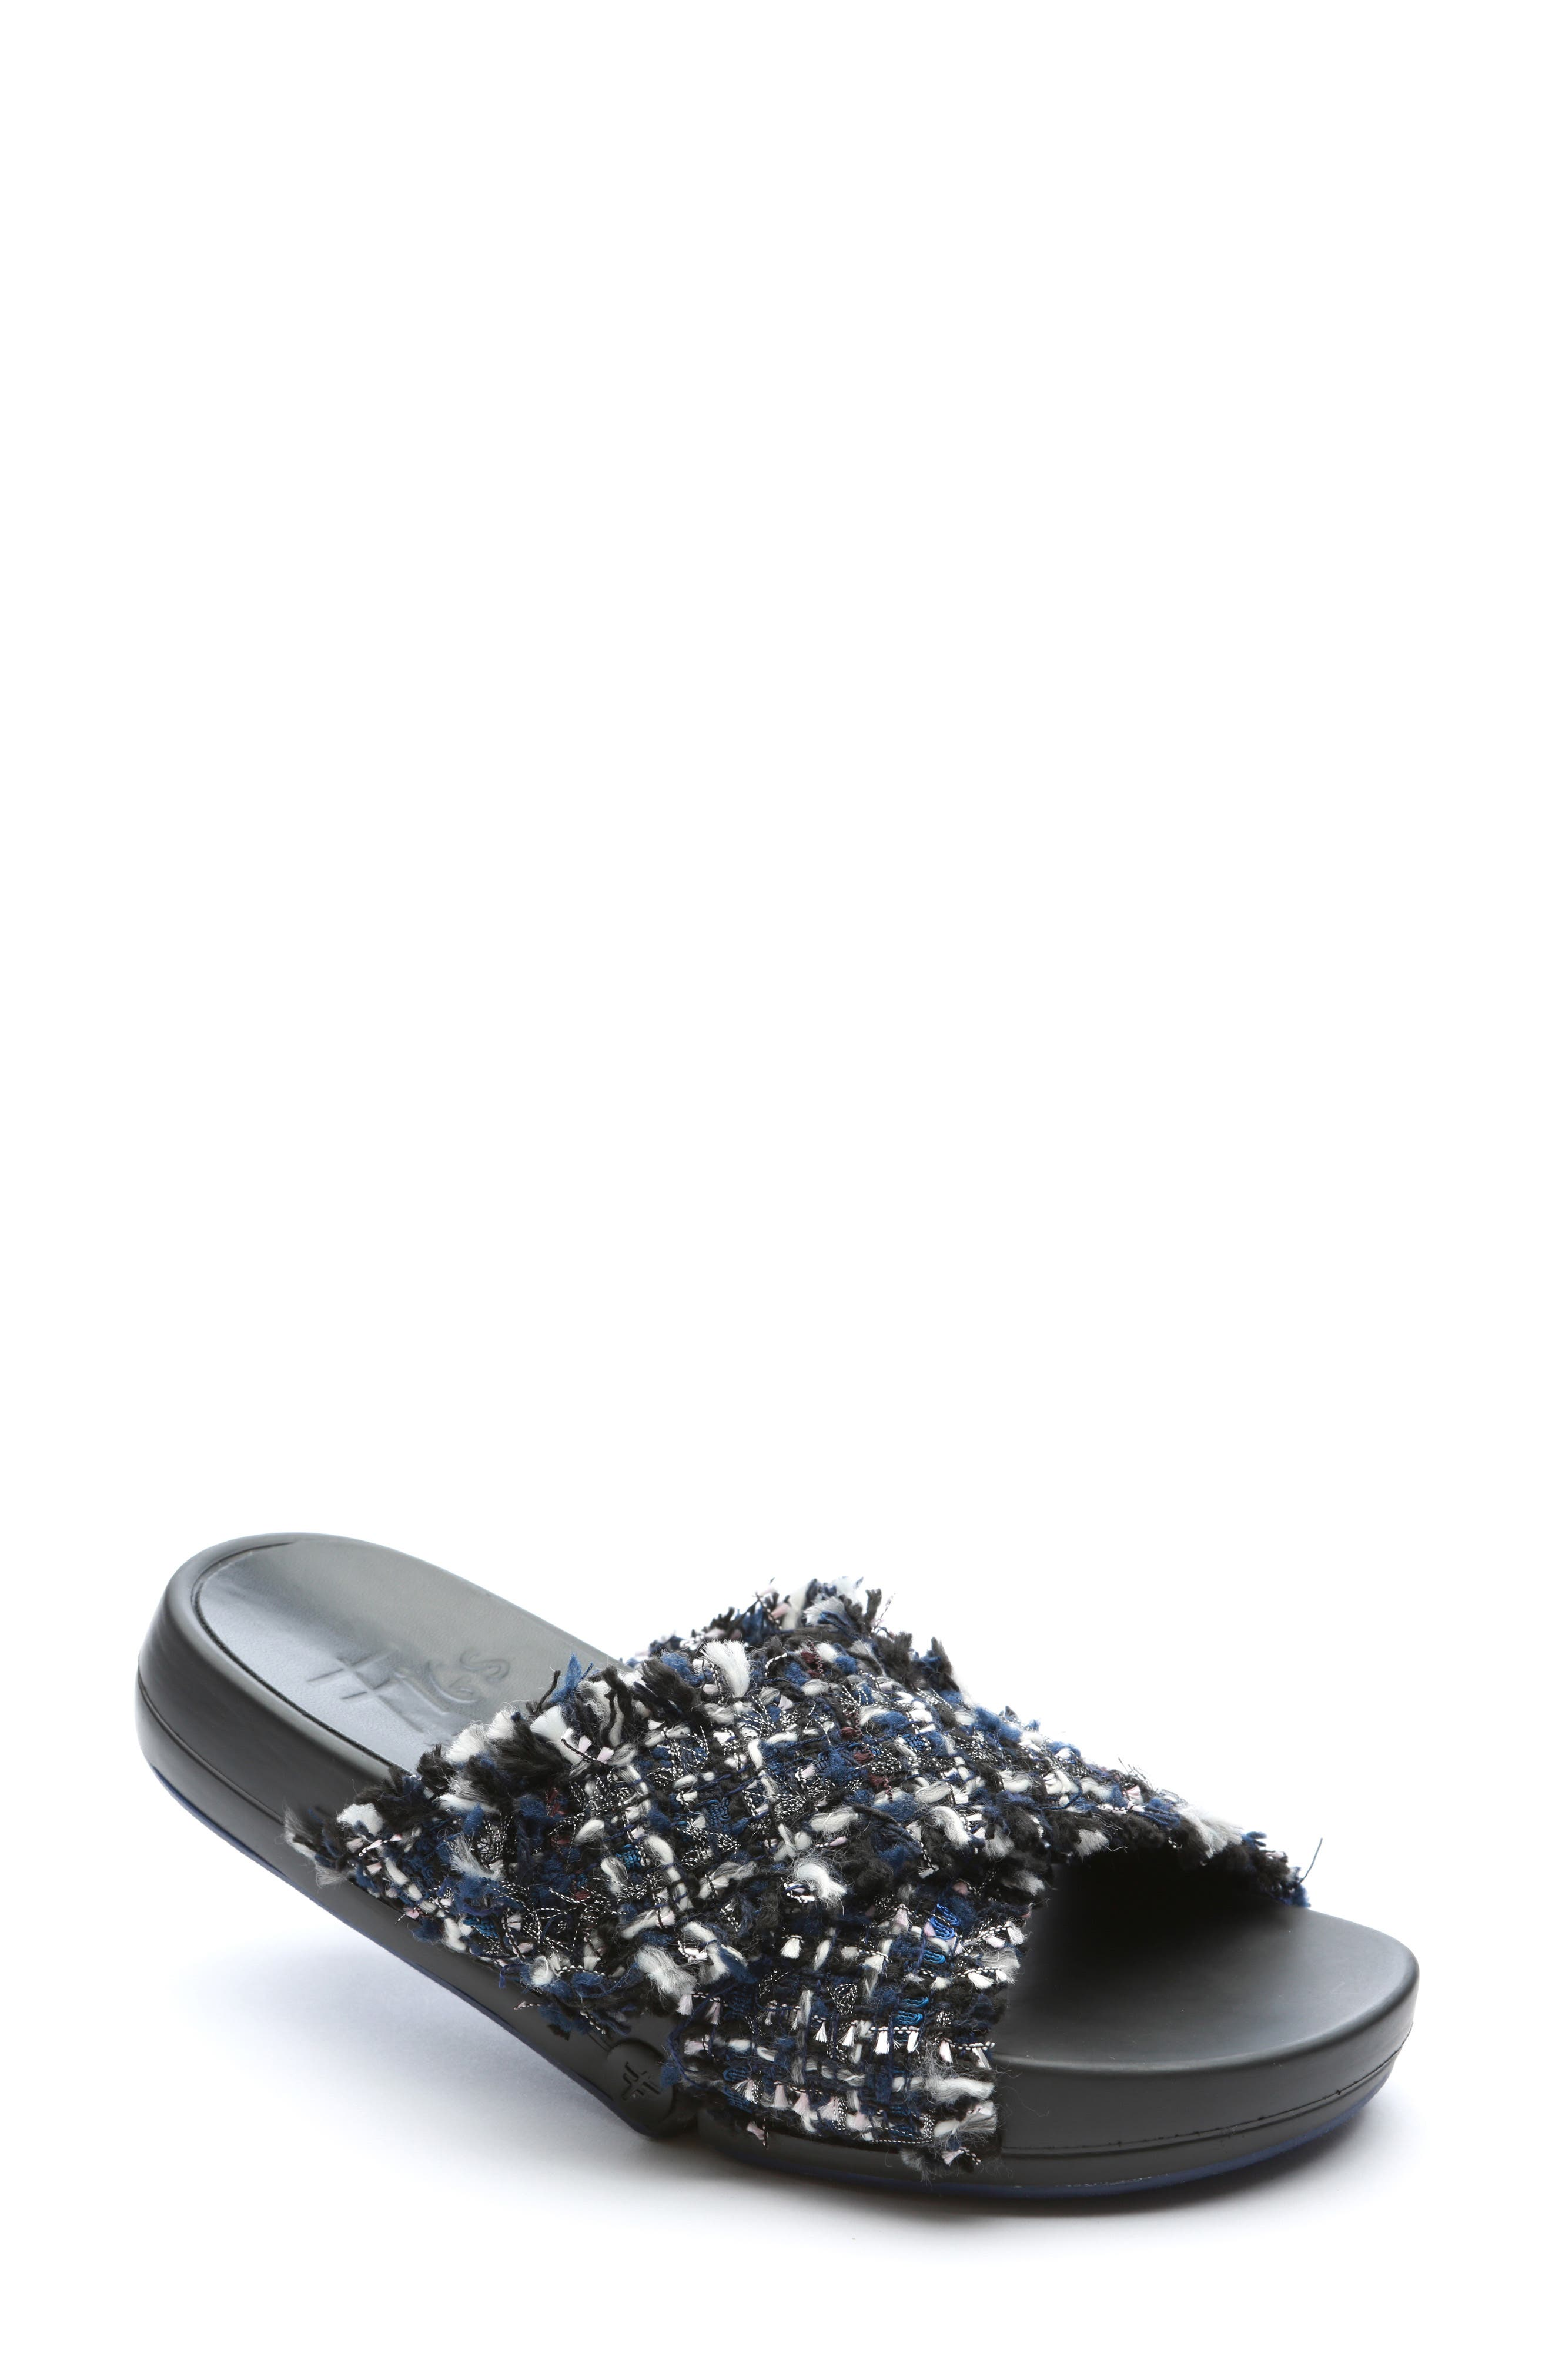 FIGS BY FIGUEROA Figomatic Tweed Slide Sandal, Main, color, NAVY FABRIC